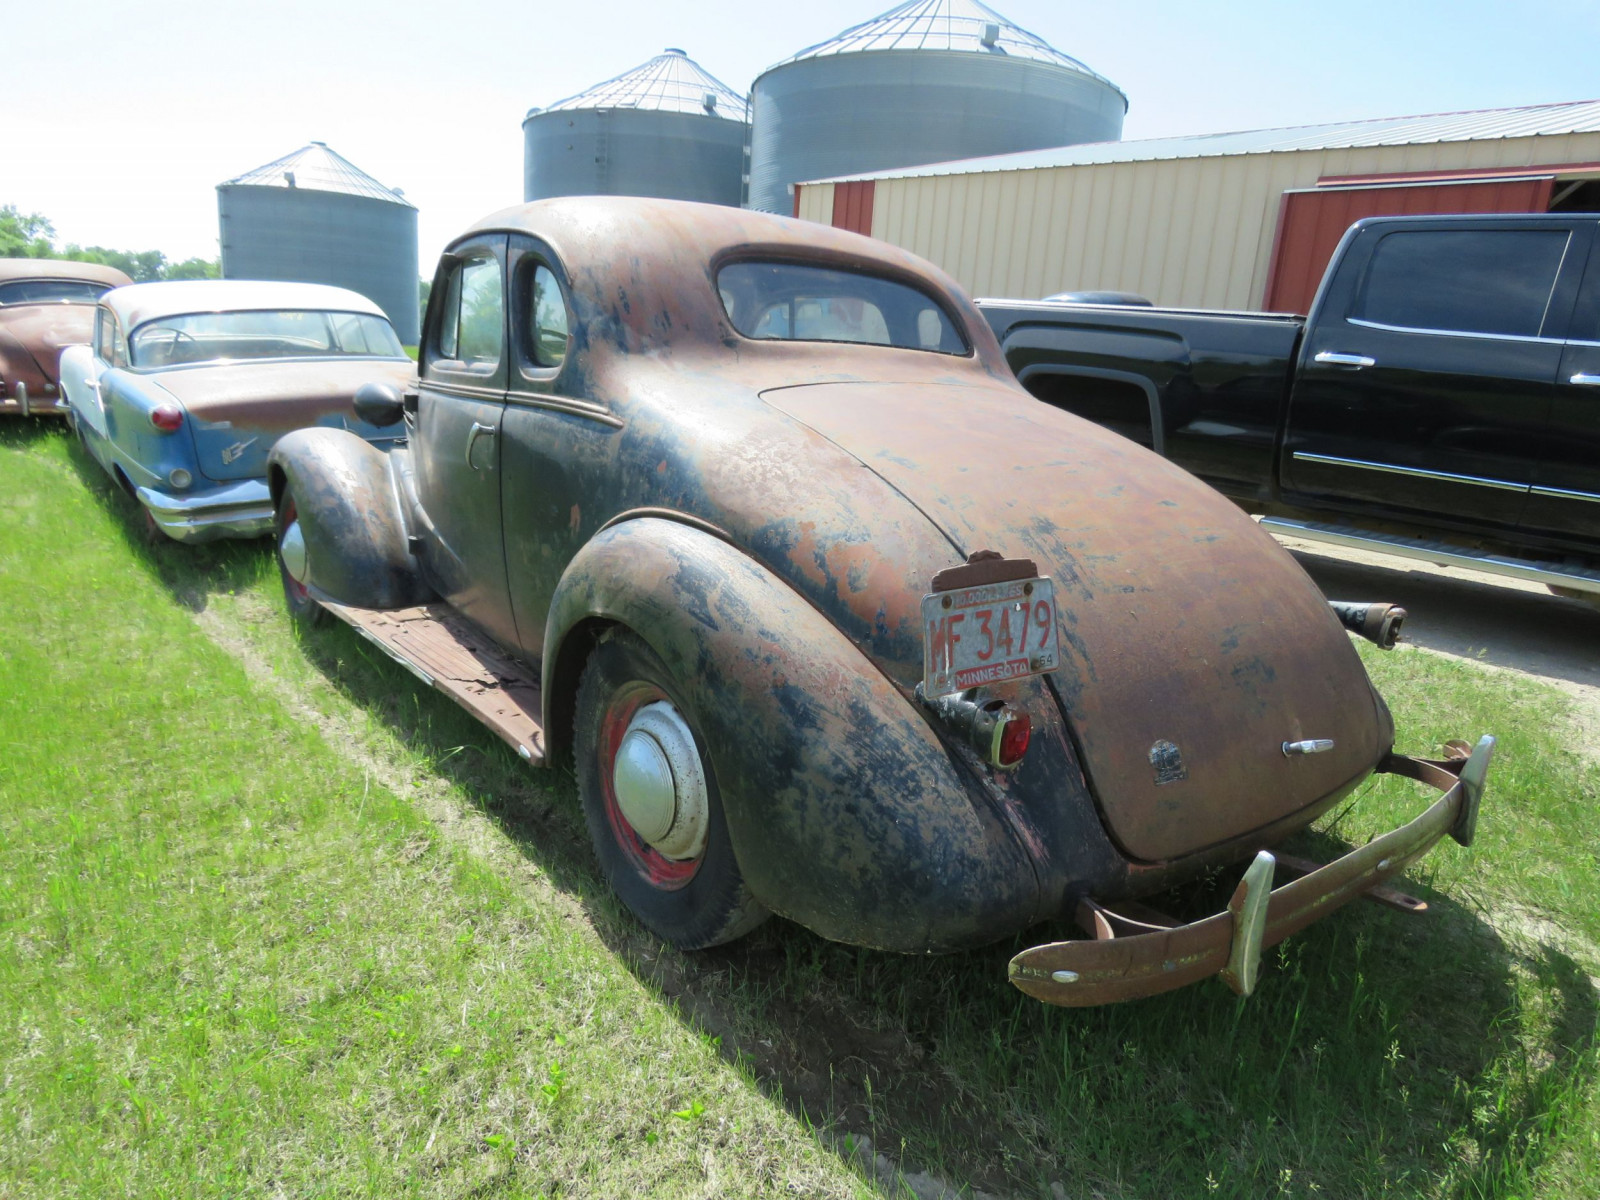 1938 Chevrolet Master Deluxe Coupe 21HA12 15228 - Image 8